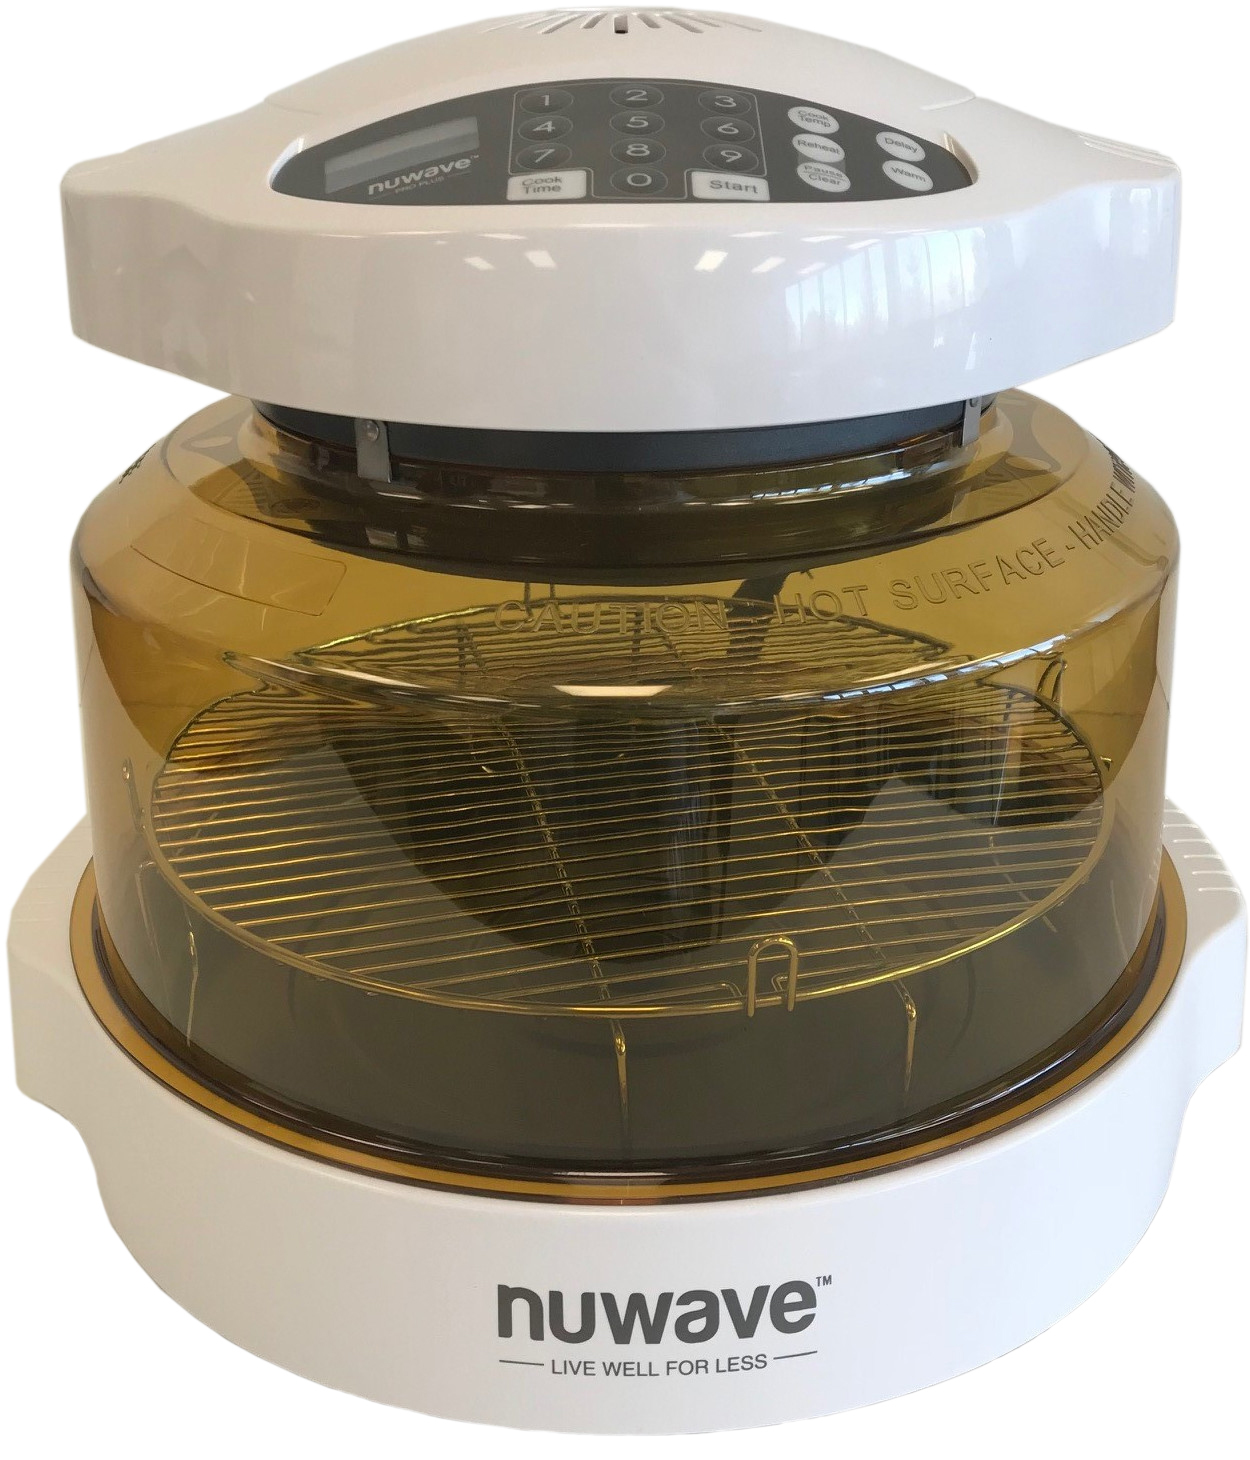 NuWave Pro Plus Oven (White) by NuWave